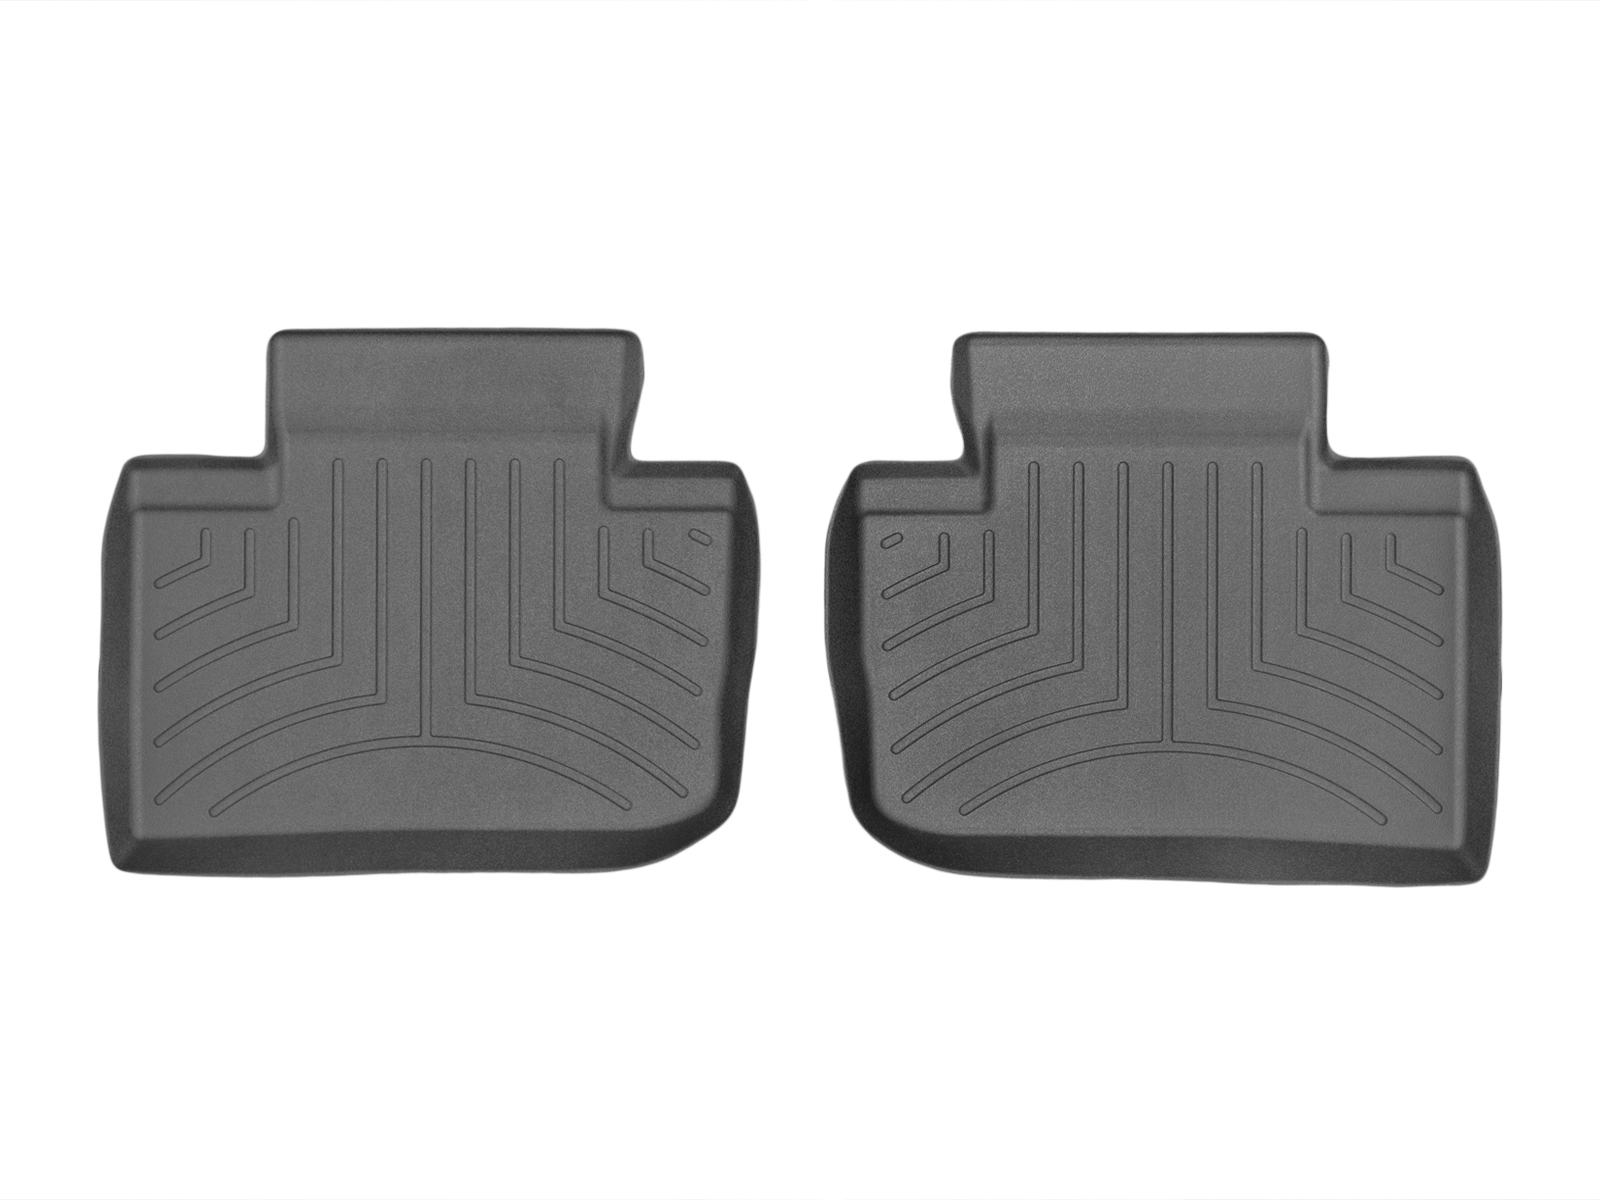 Tappeti gomma Weathertech bordo alto Lexus IS 13>13 Nero A2060